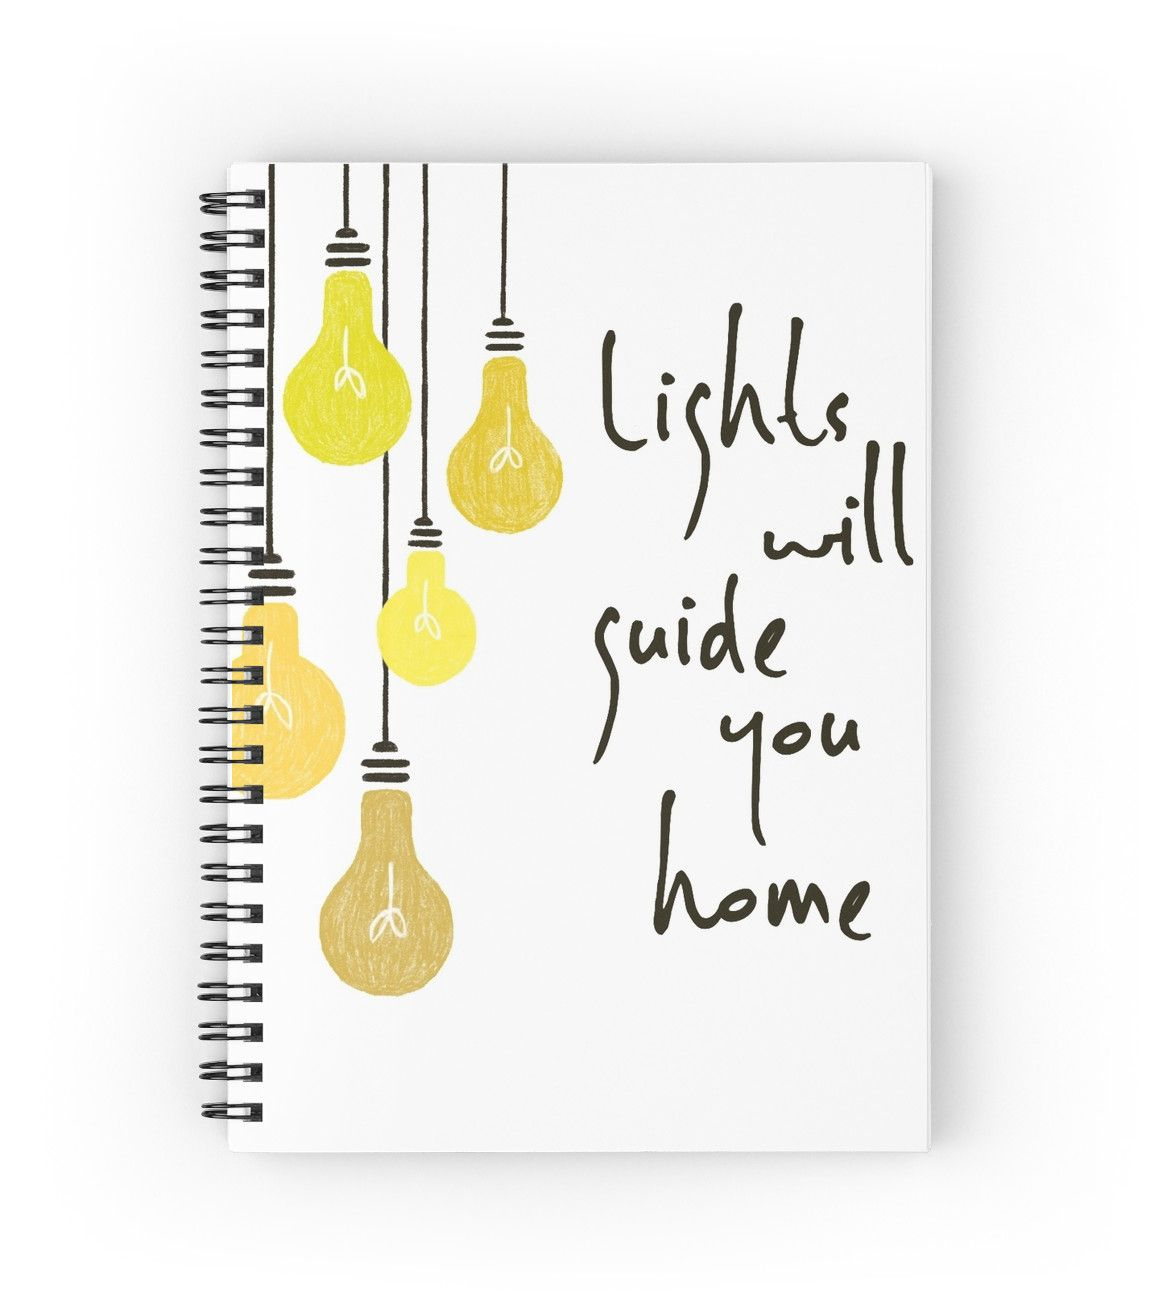 Lights Will Guide You Home by bubbliciousart | Notebooks | Pinterest ...